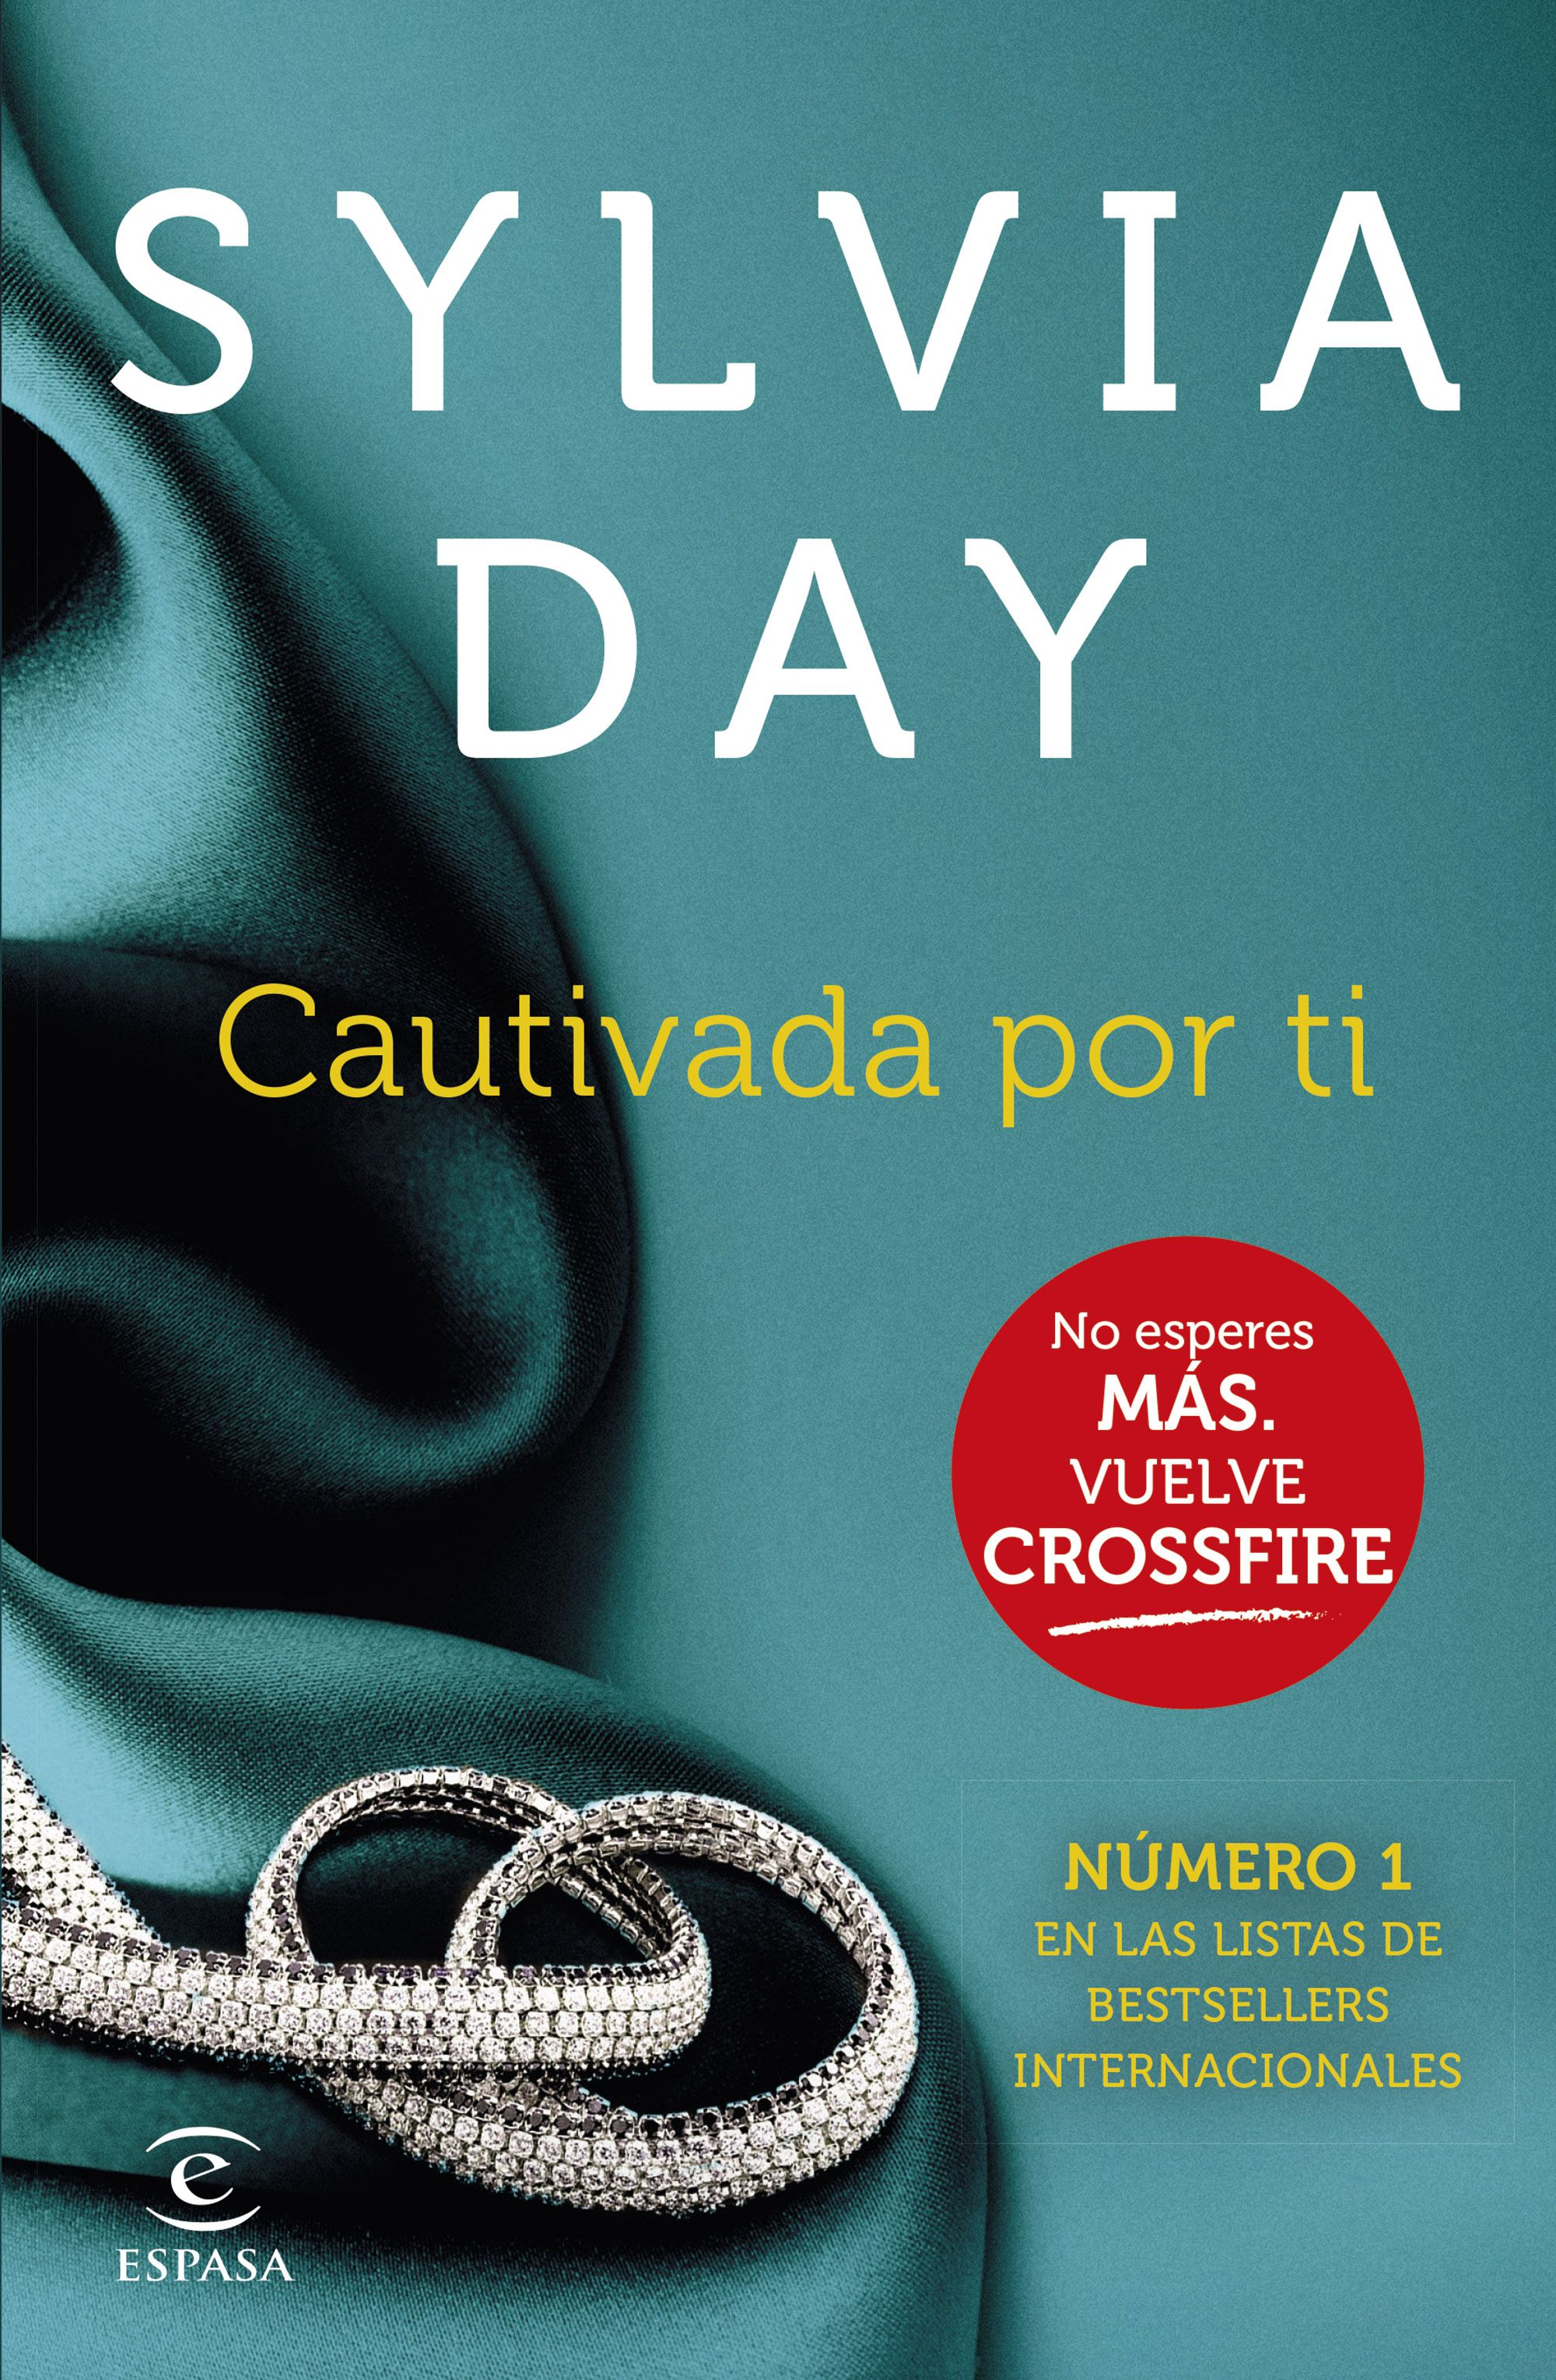 Blog De Descarga De Libros Descarga Cautivada Por Ti Crossfire Iv Read It Sylvia Day